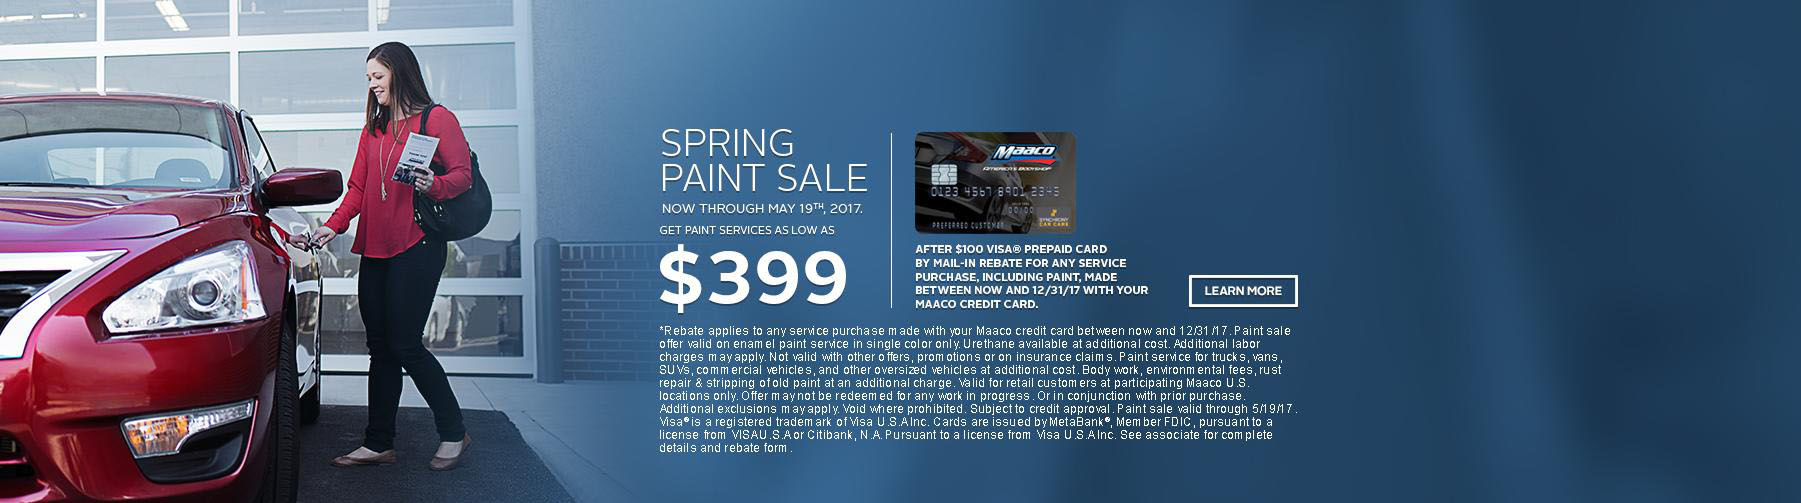 Maaco: Spring Paint Sale Starting at $399 after $100 rebate from using your Maaco Credit Card, click Learn More for further details.